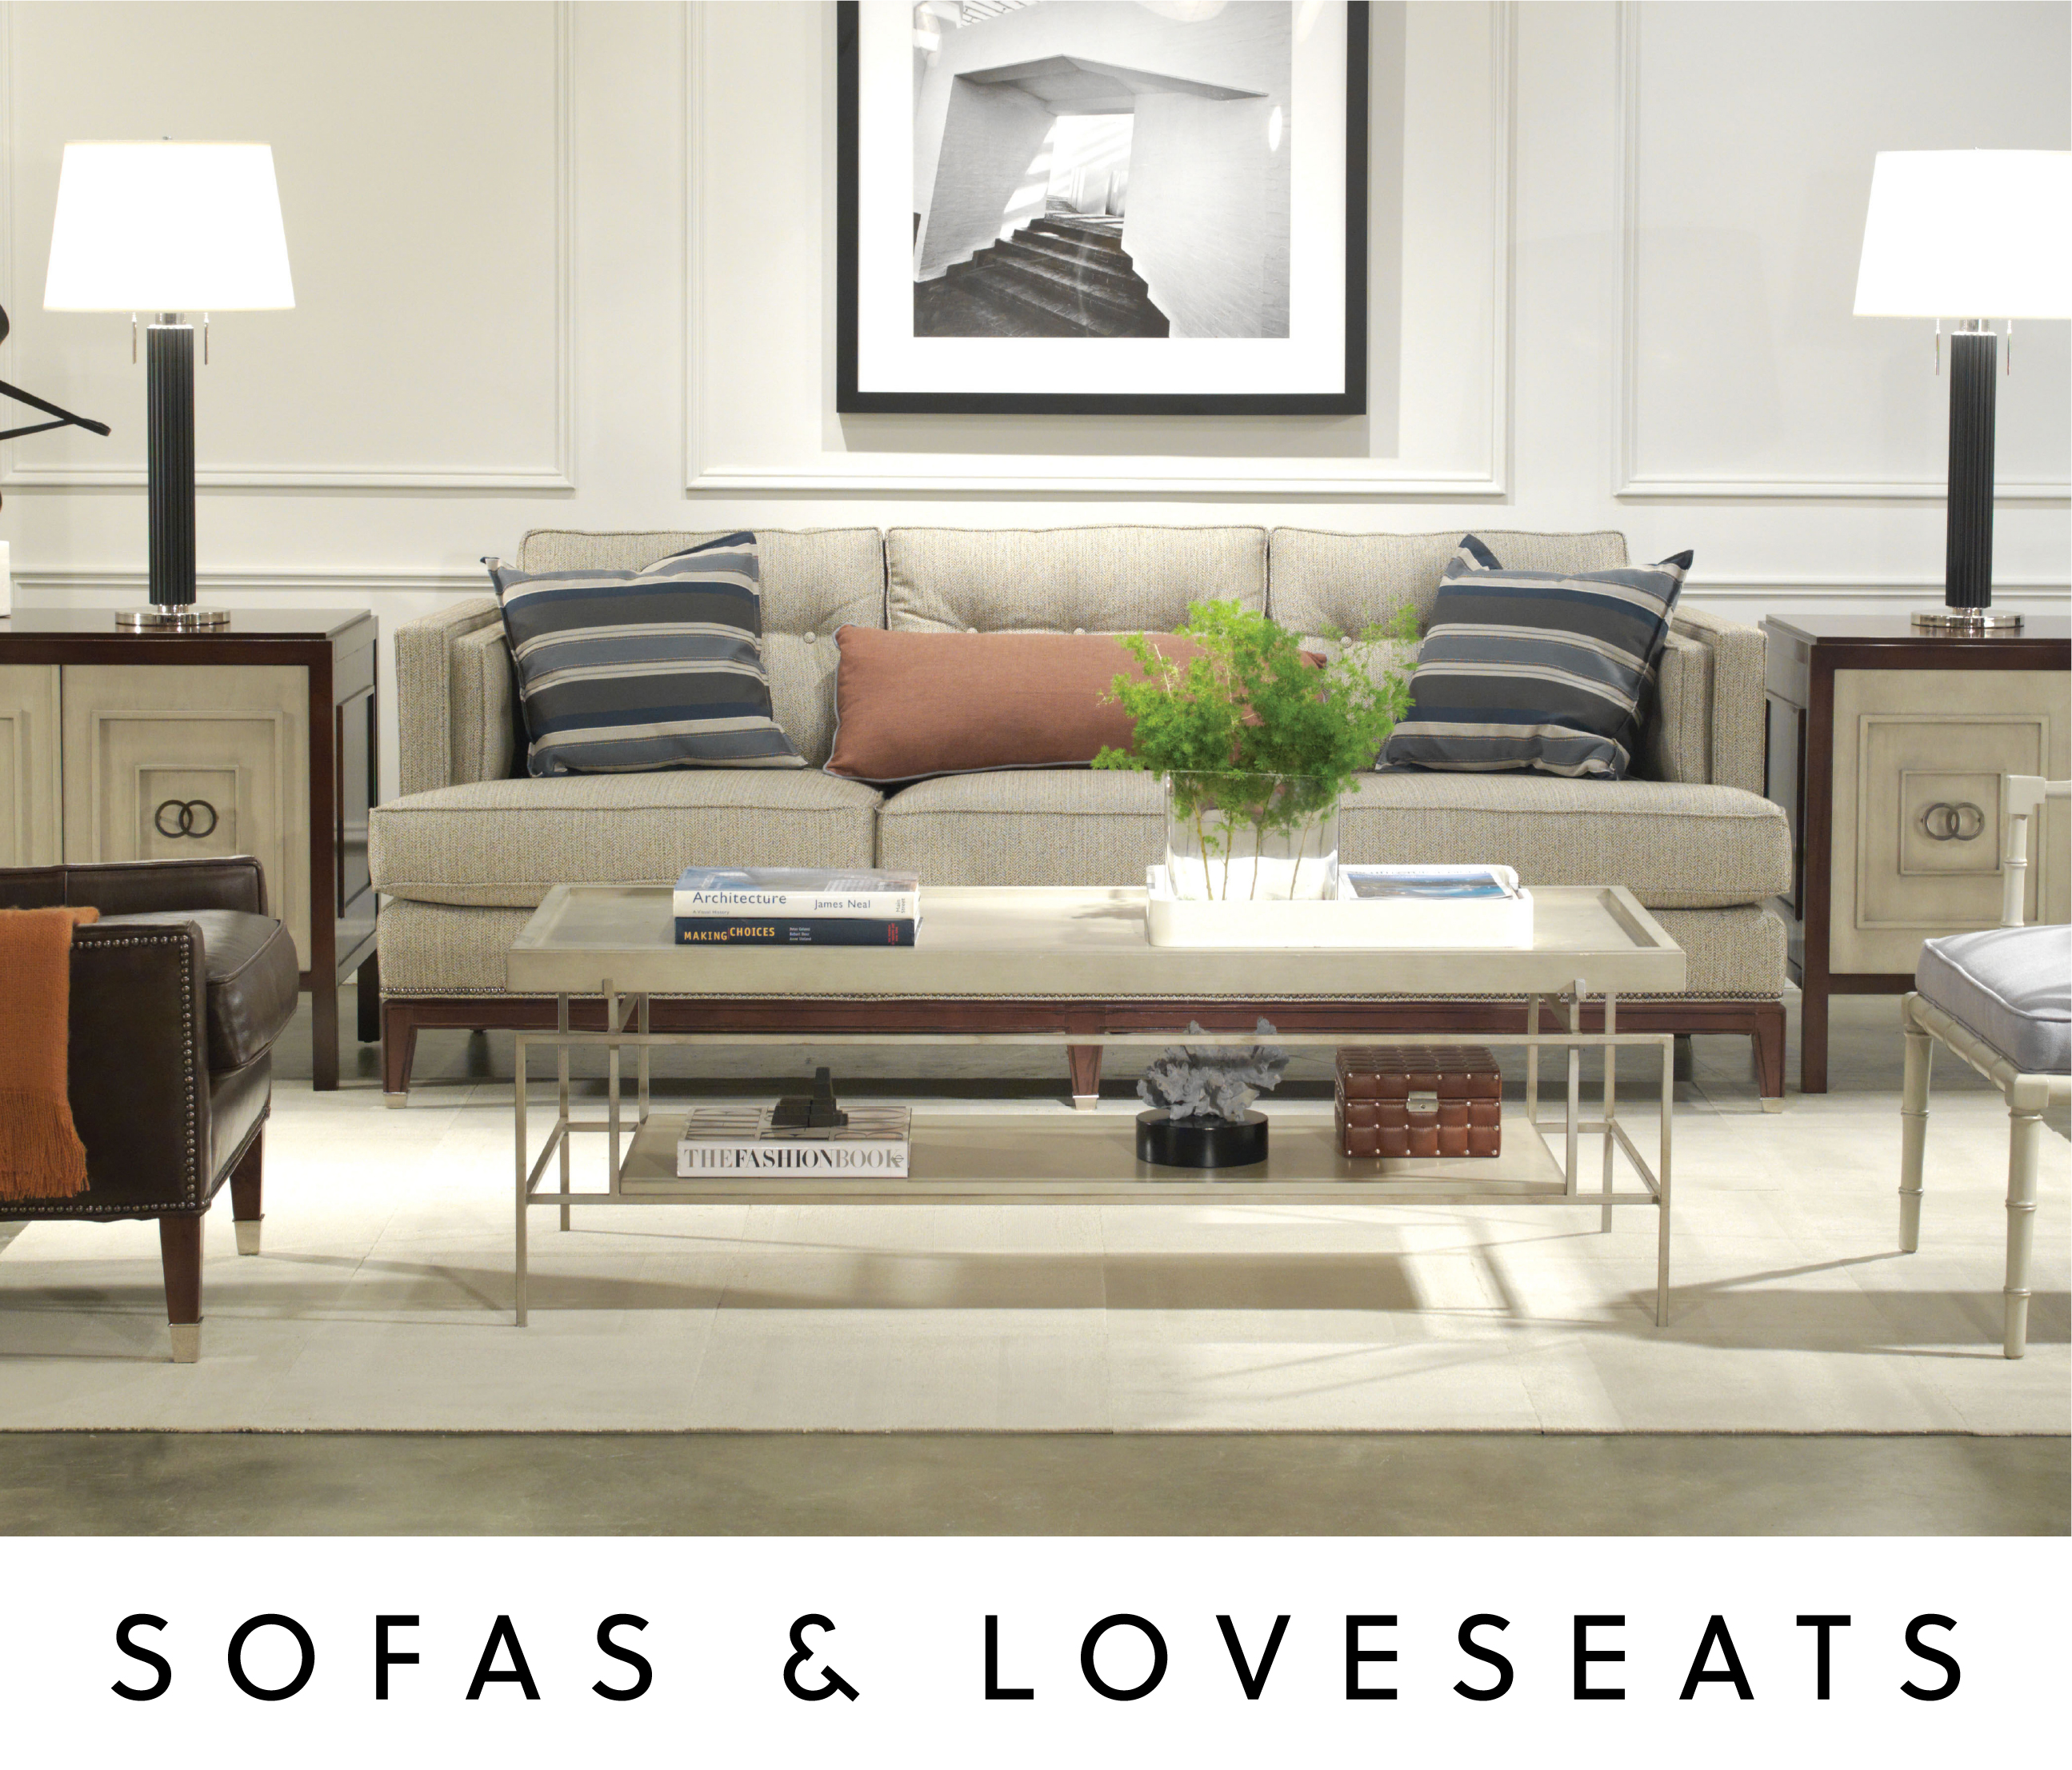 Sofas and Loveseats